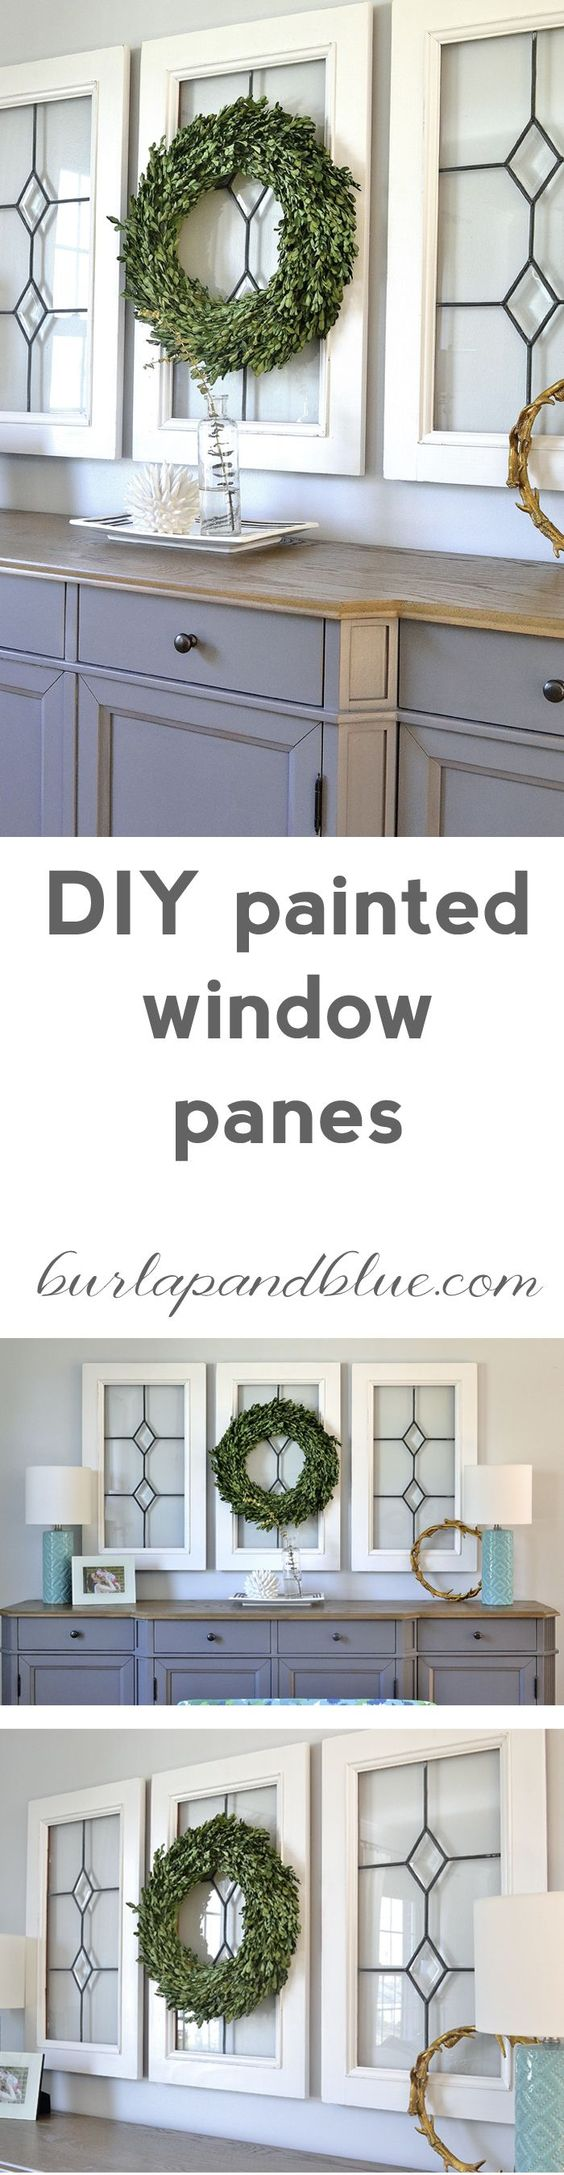 If you love the Fixer-Upper look, check out these DIY painted window panes!